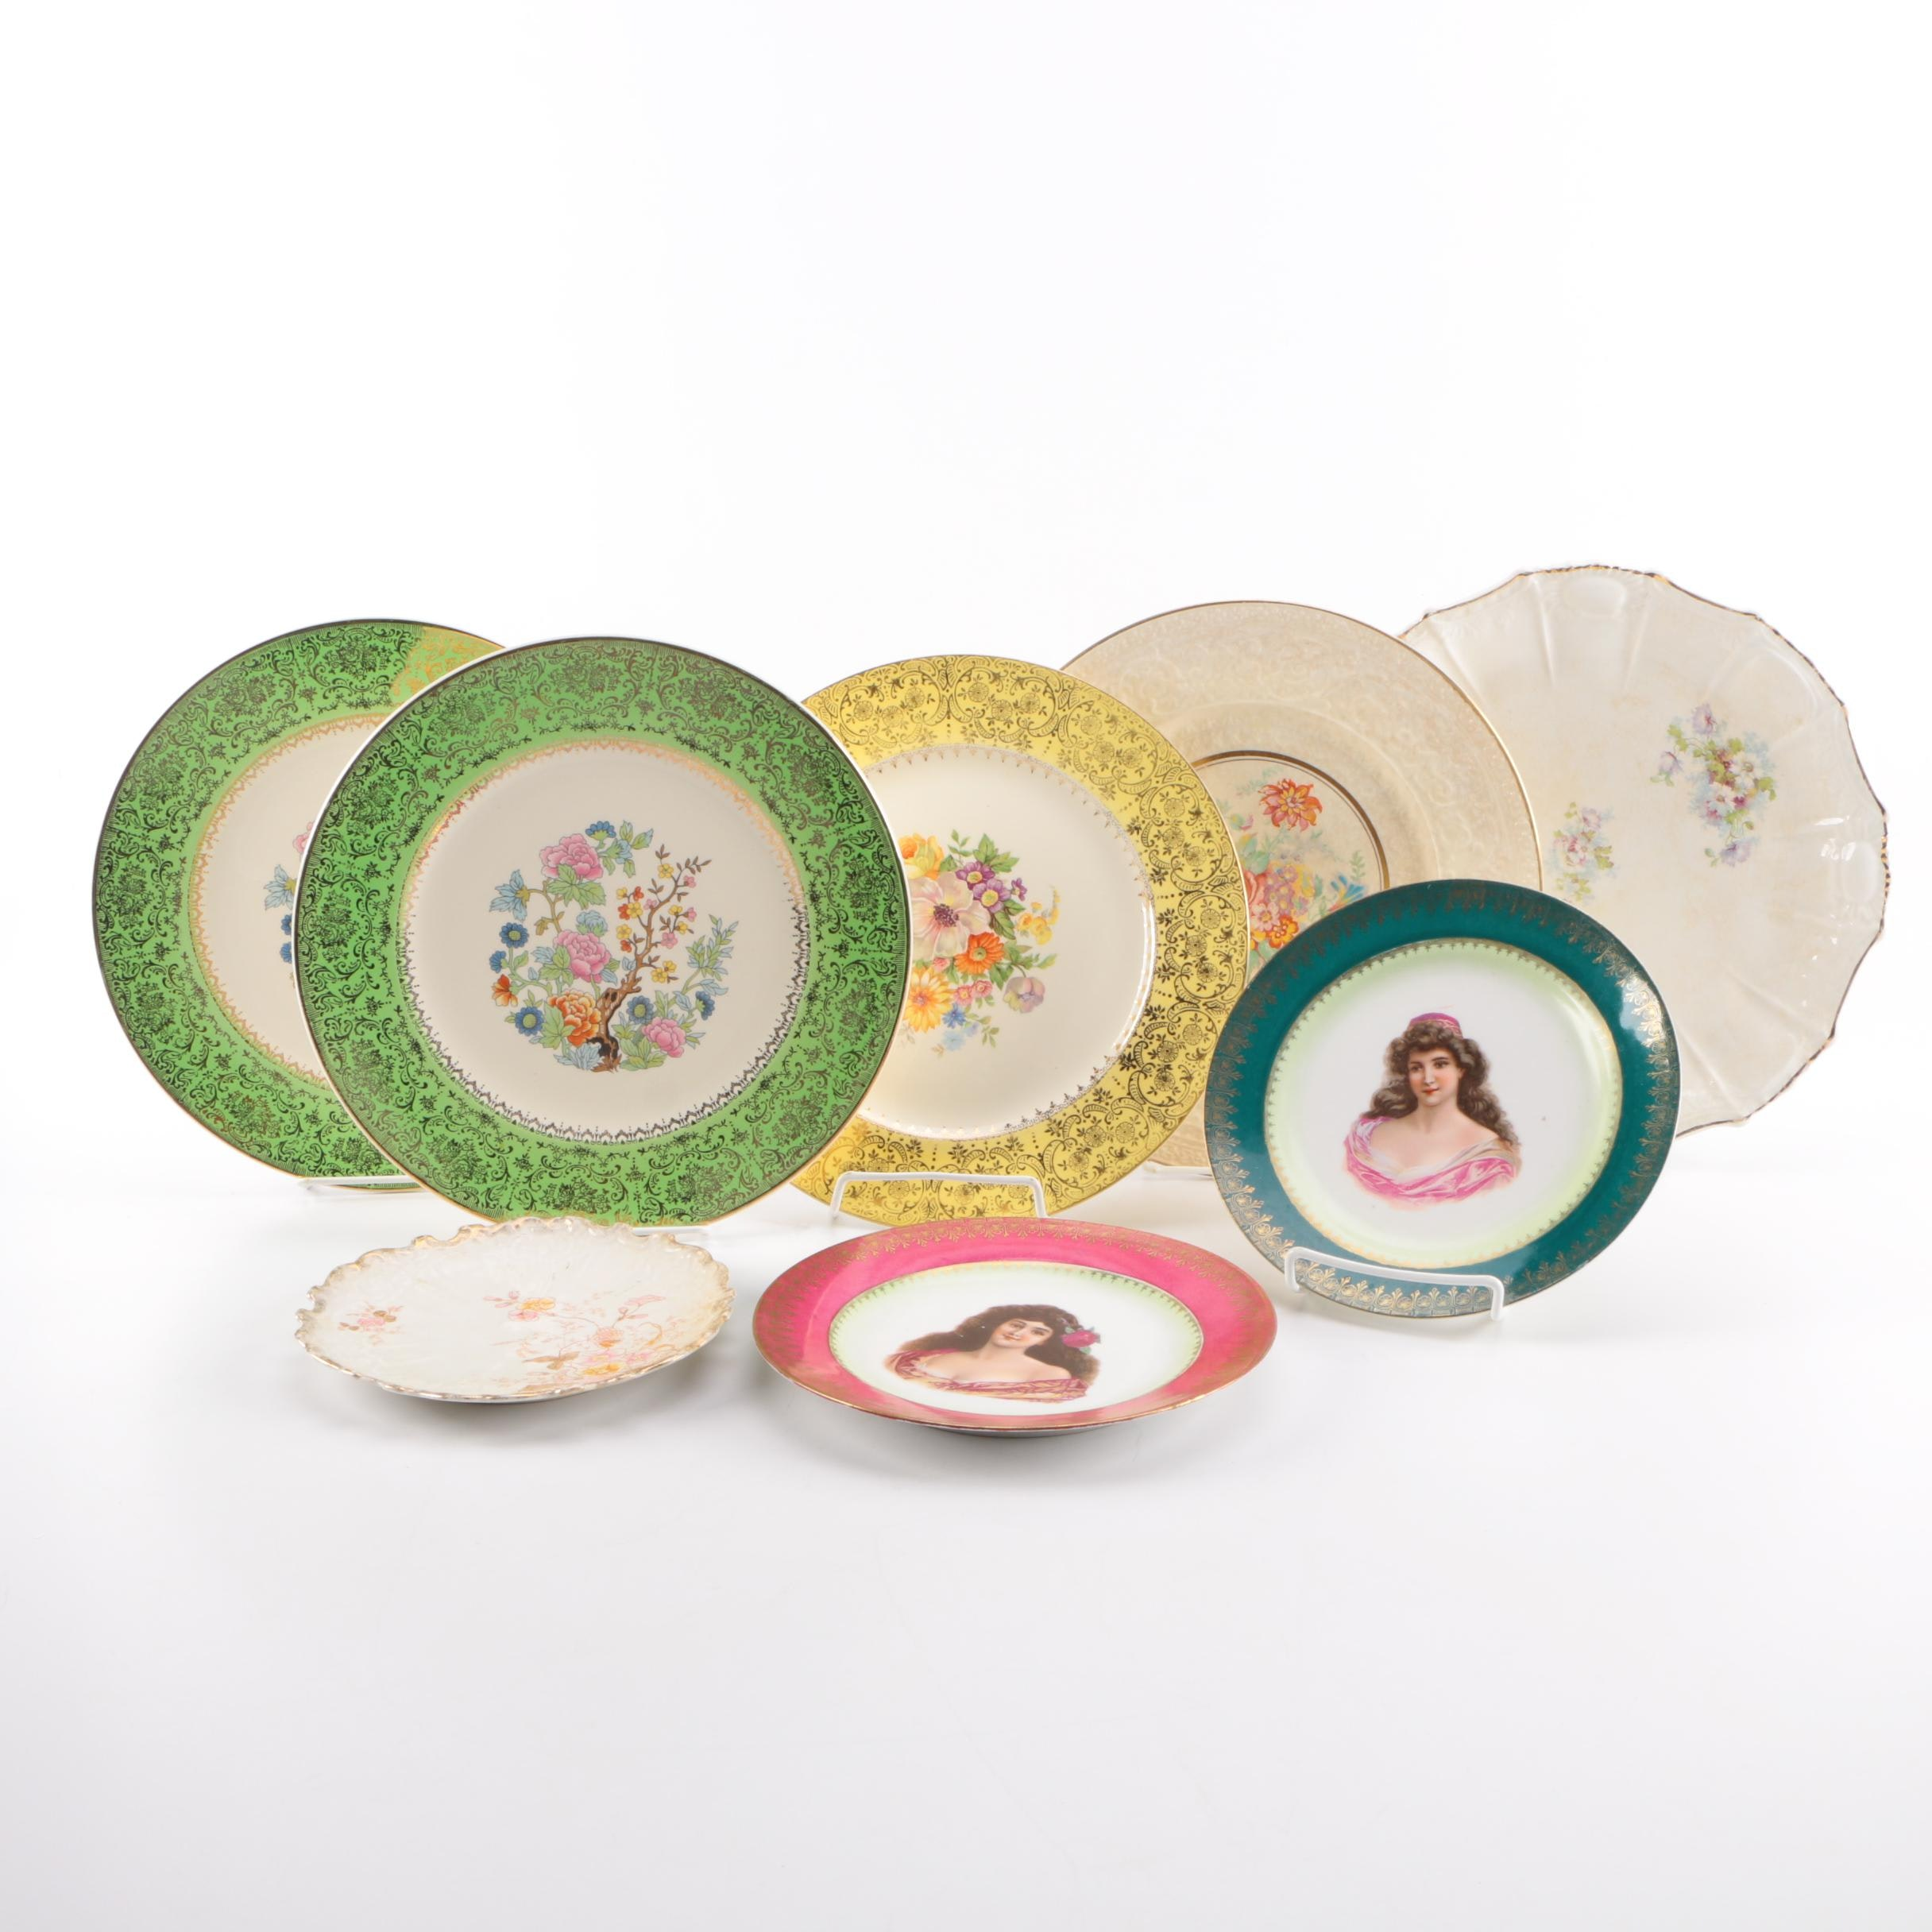 Decorative Porcelain and China Plate Collection Featuring Wedgwood and Knowles